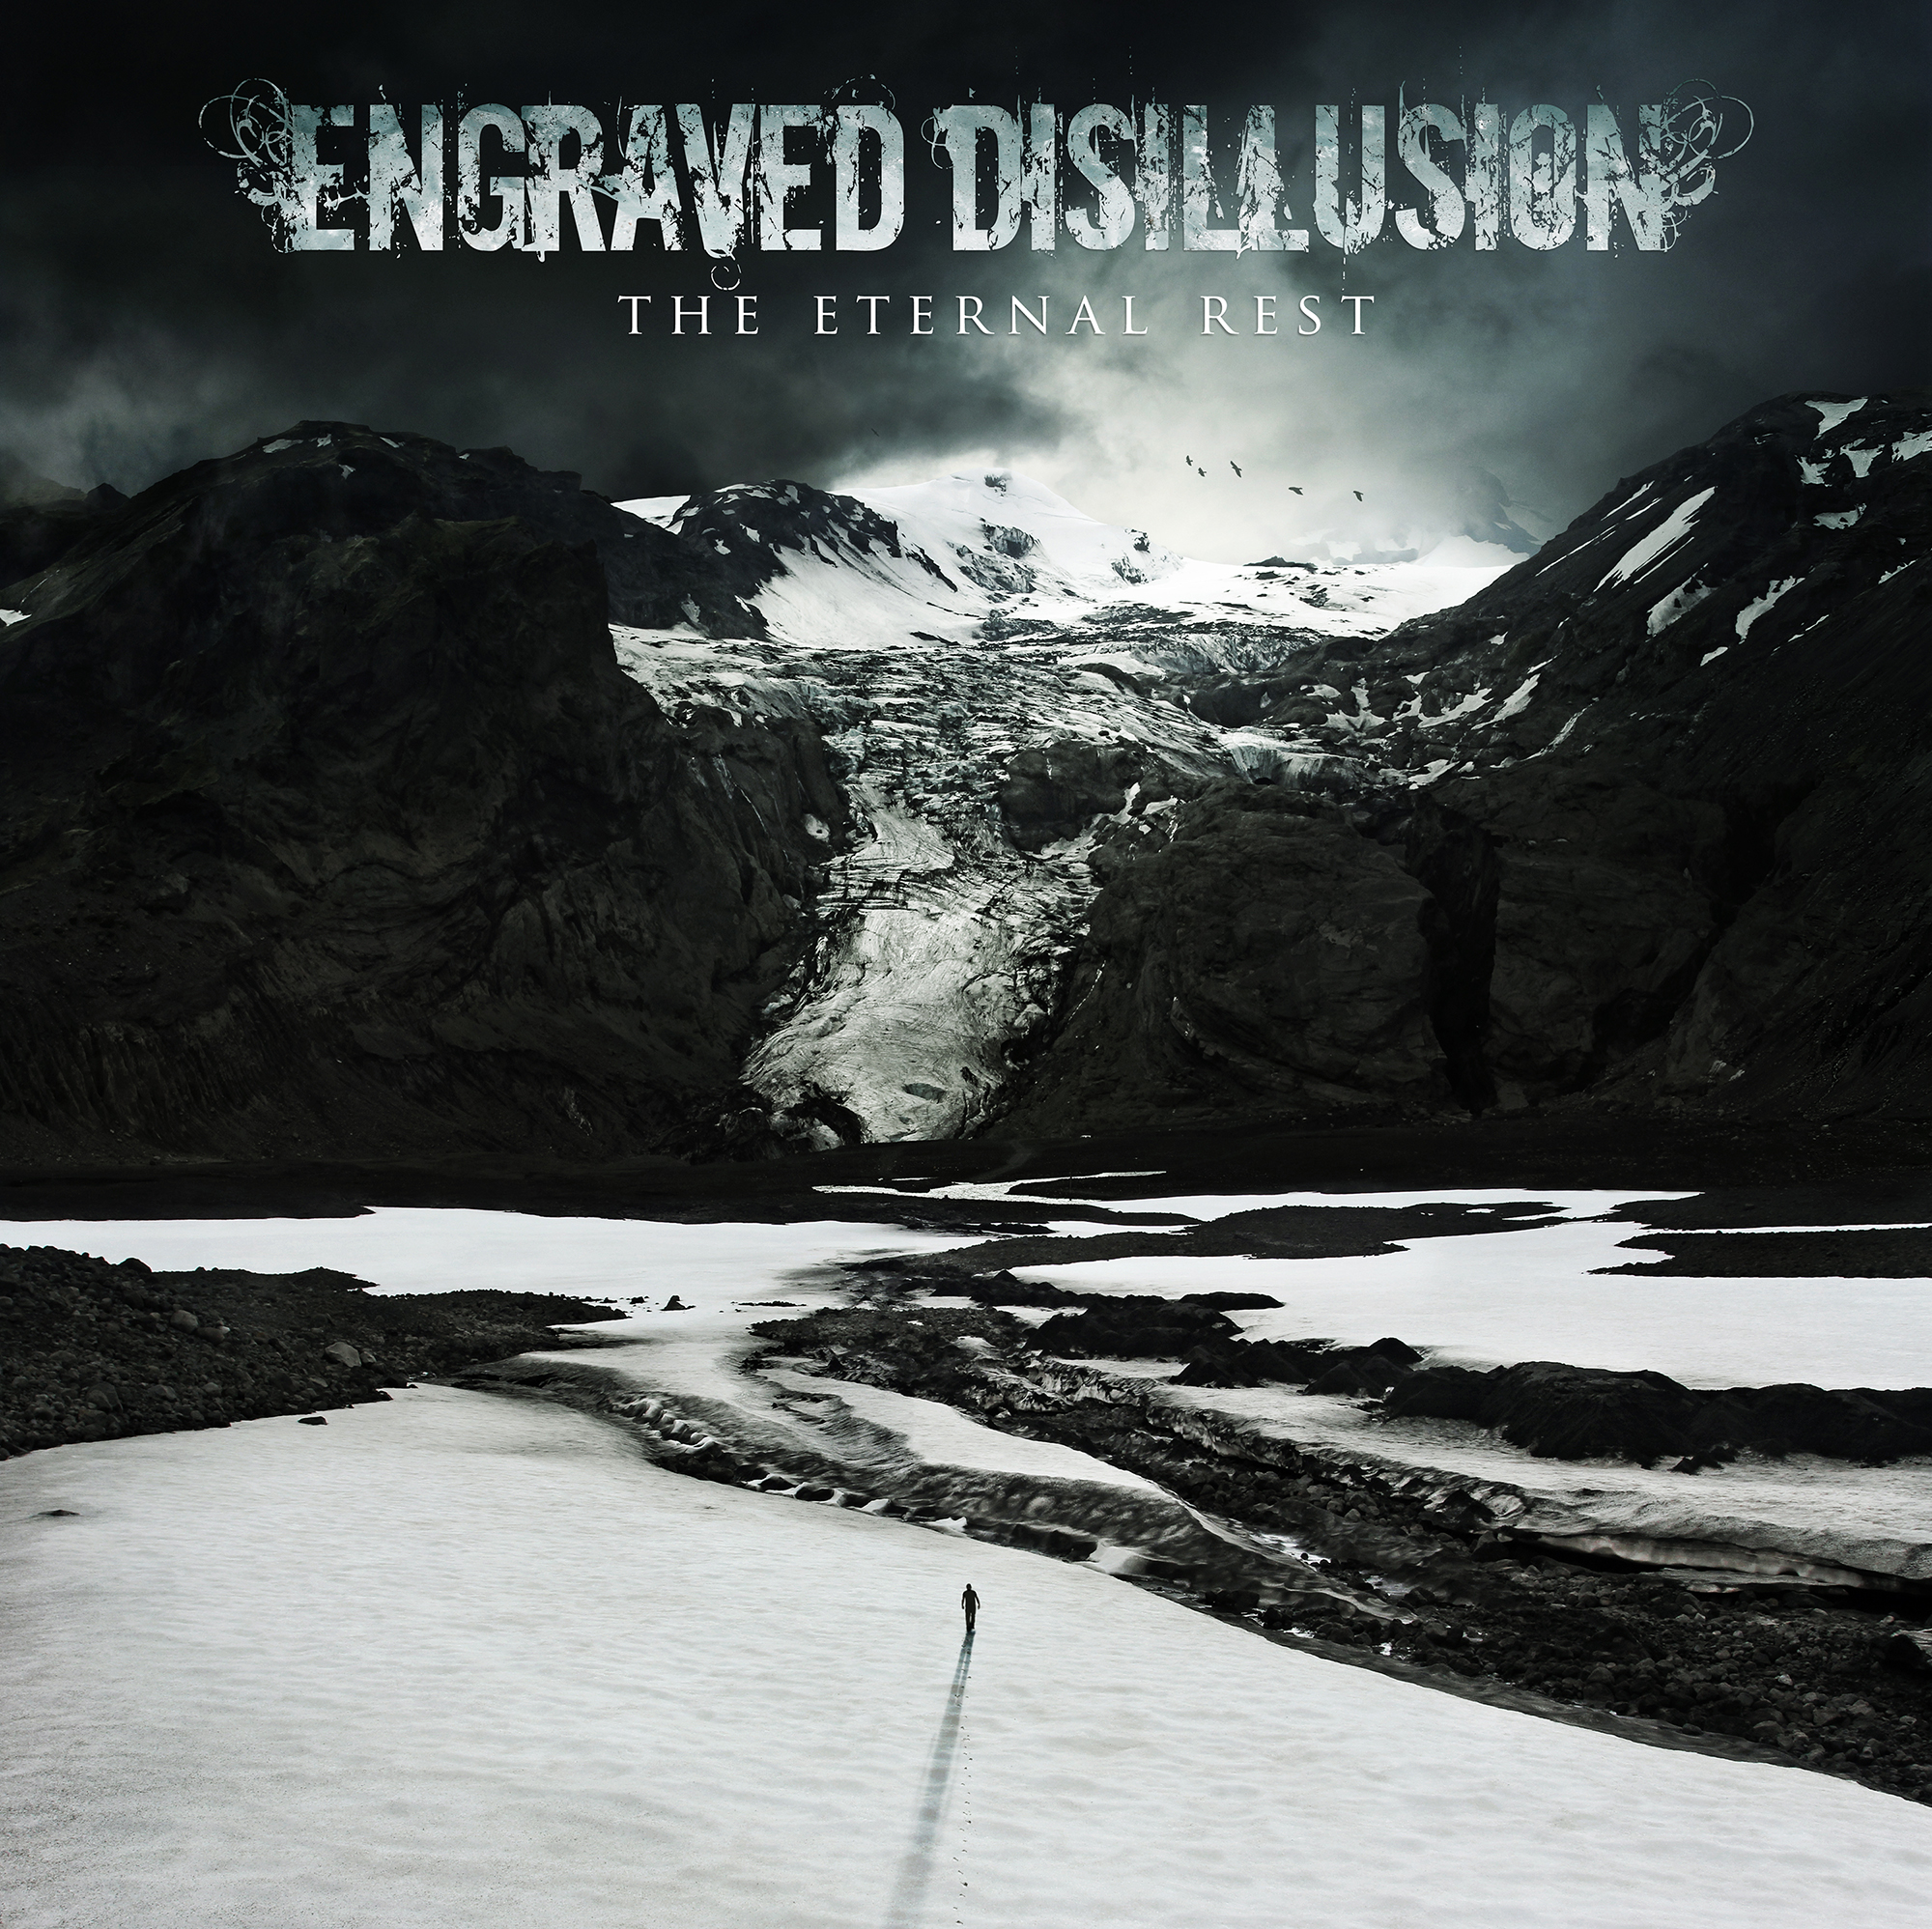 Engraved Disillusion - The Eternal Rest Artwork